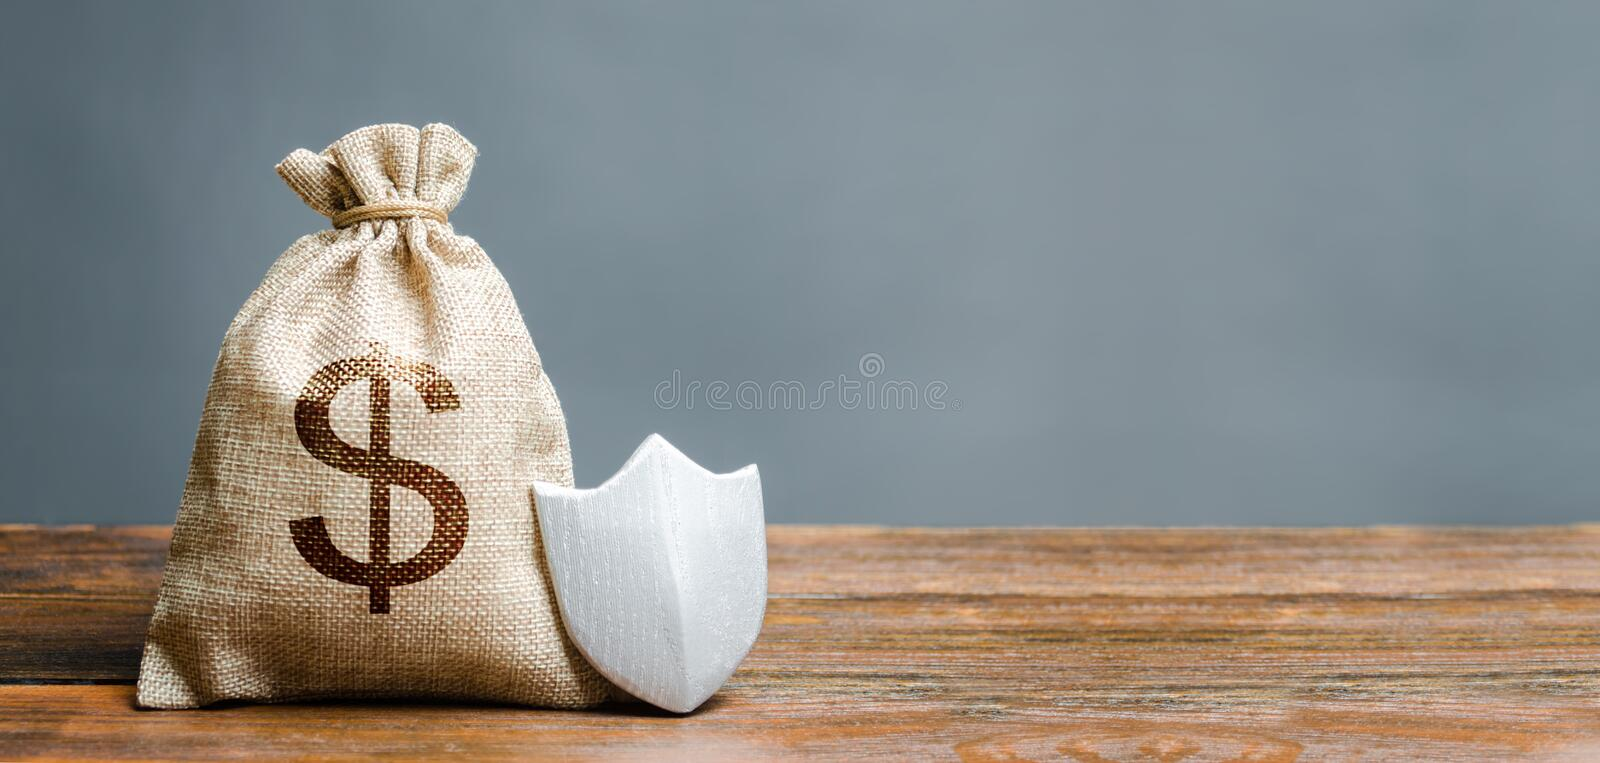 Bag with dollar symbol and protection shield. Concept of protection of money, guaranteed deposits. Client rights protection stock photography